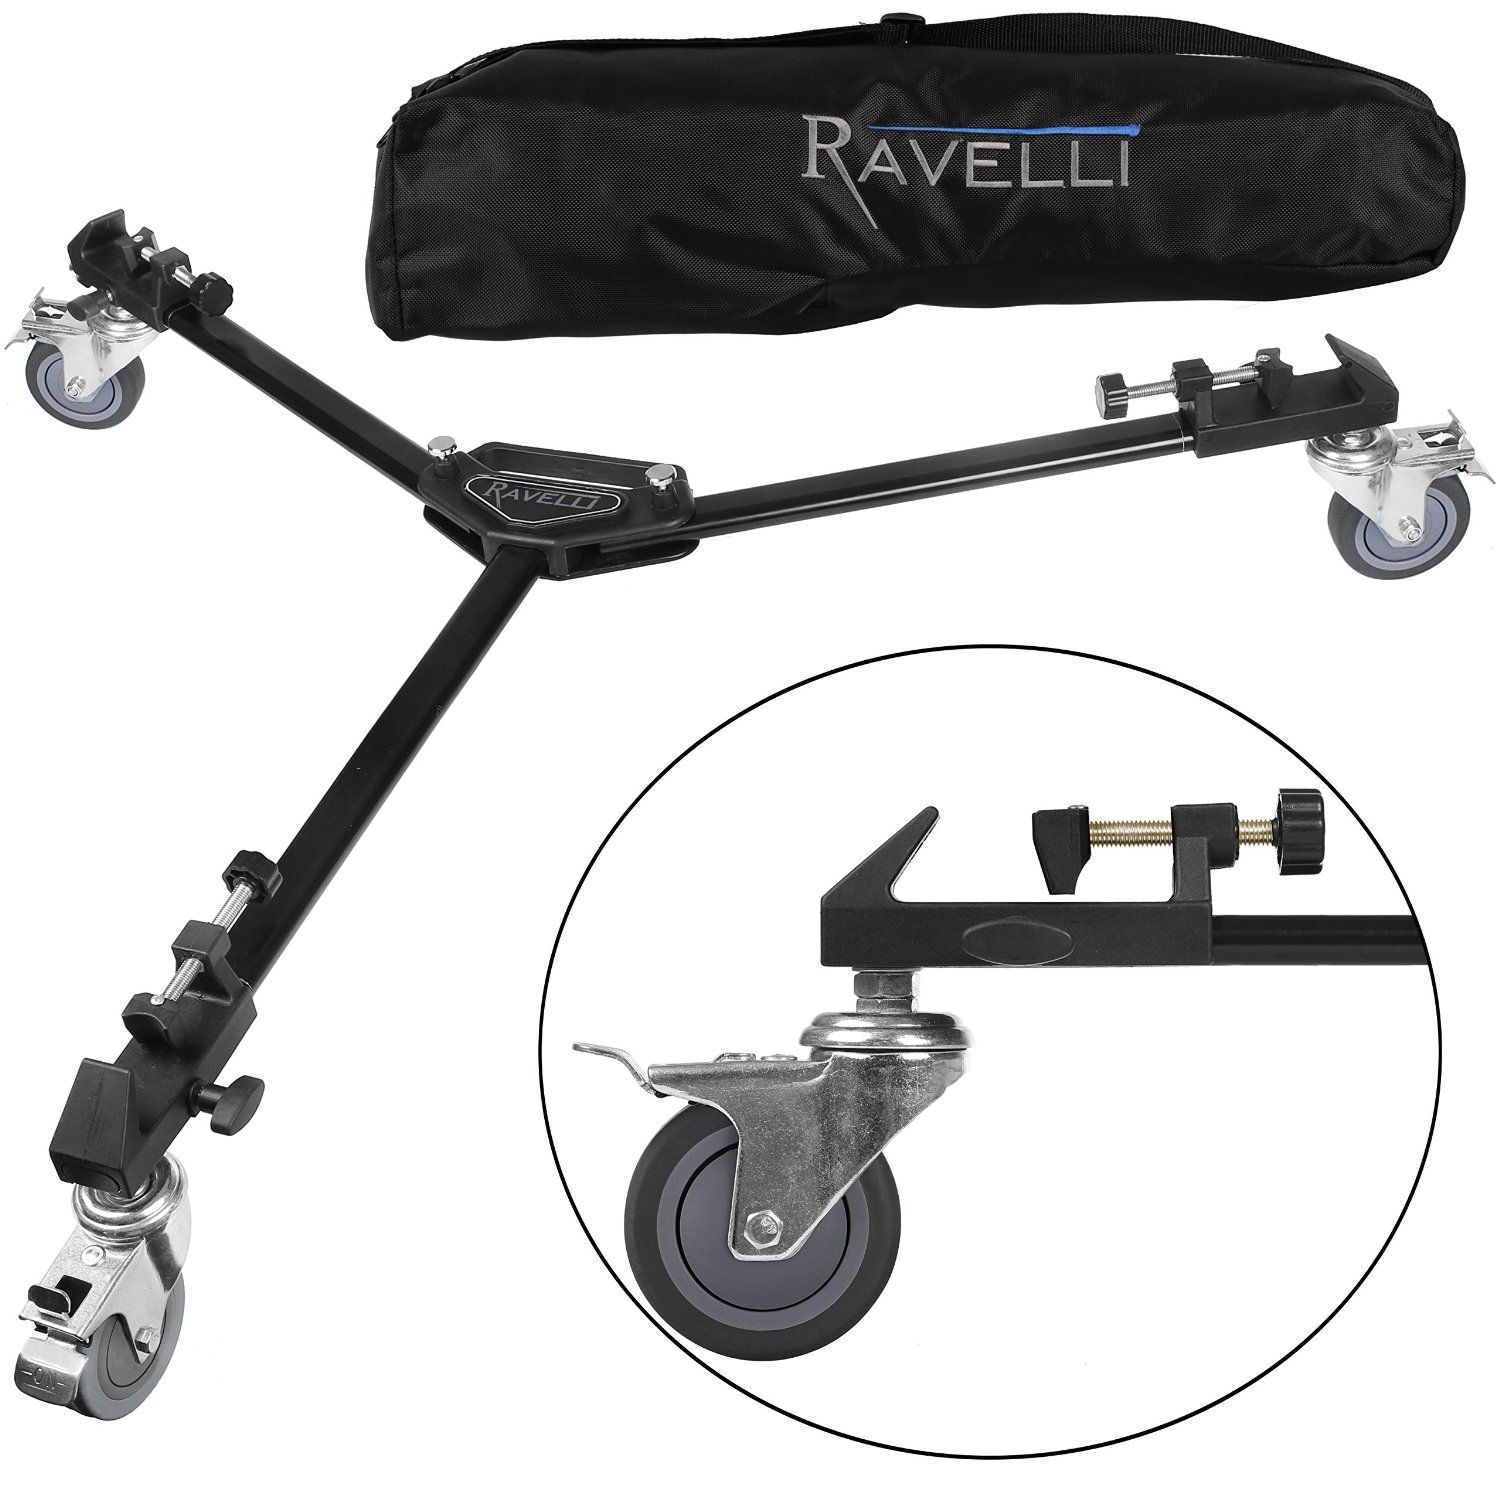 Amazoncom Ravelli Atd Professional Tripod Dolly For Camera Photo